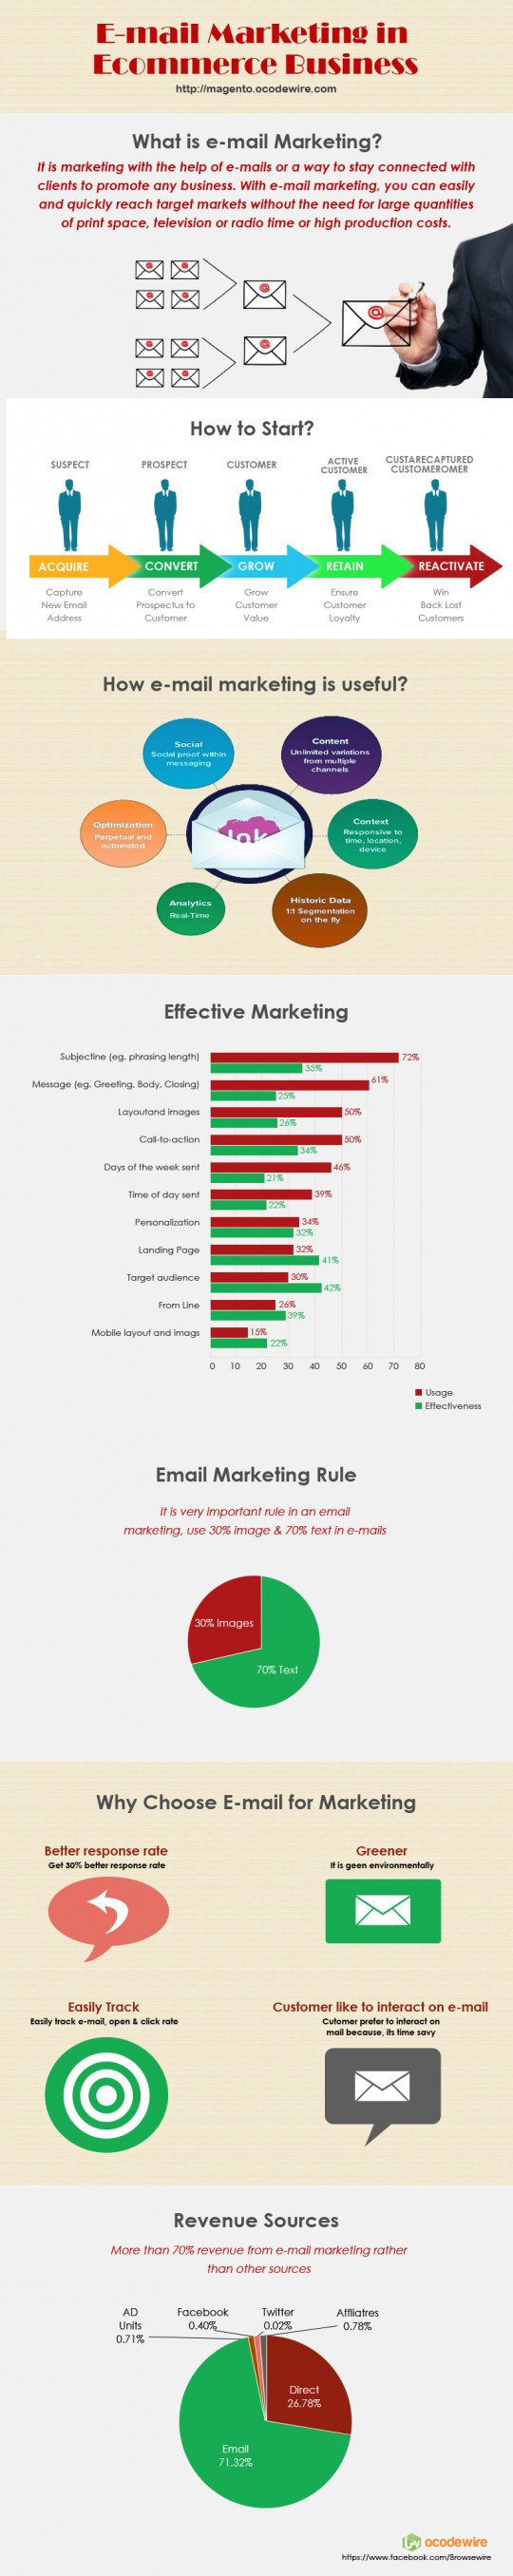 E-mail Marketing in Ecommerce Business